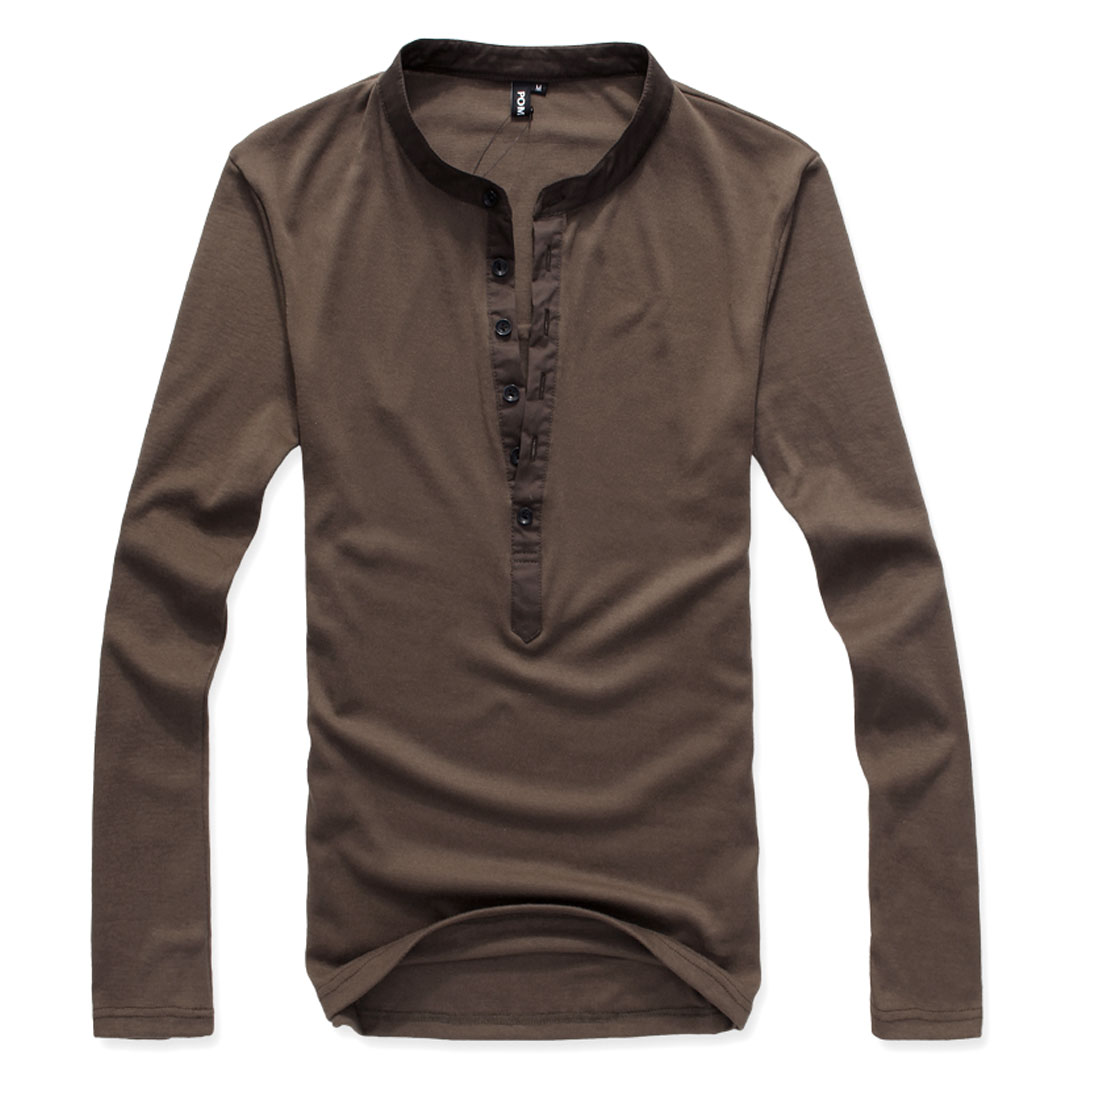 Men Coffee Color Leisure Basic Stretchy Shirt Top M